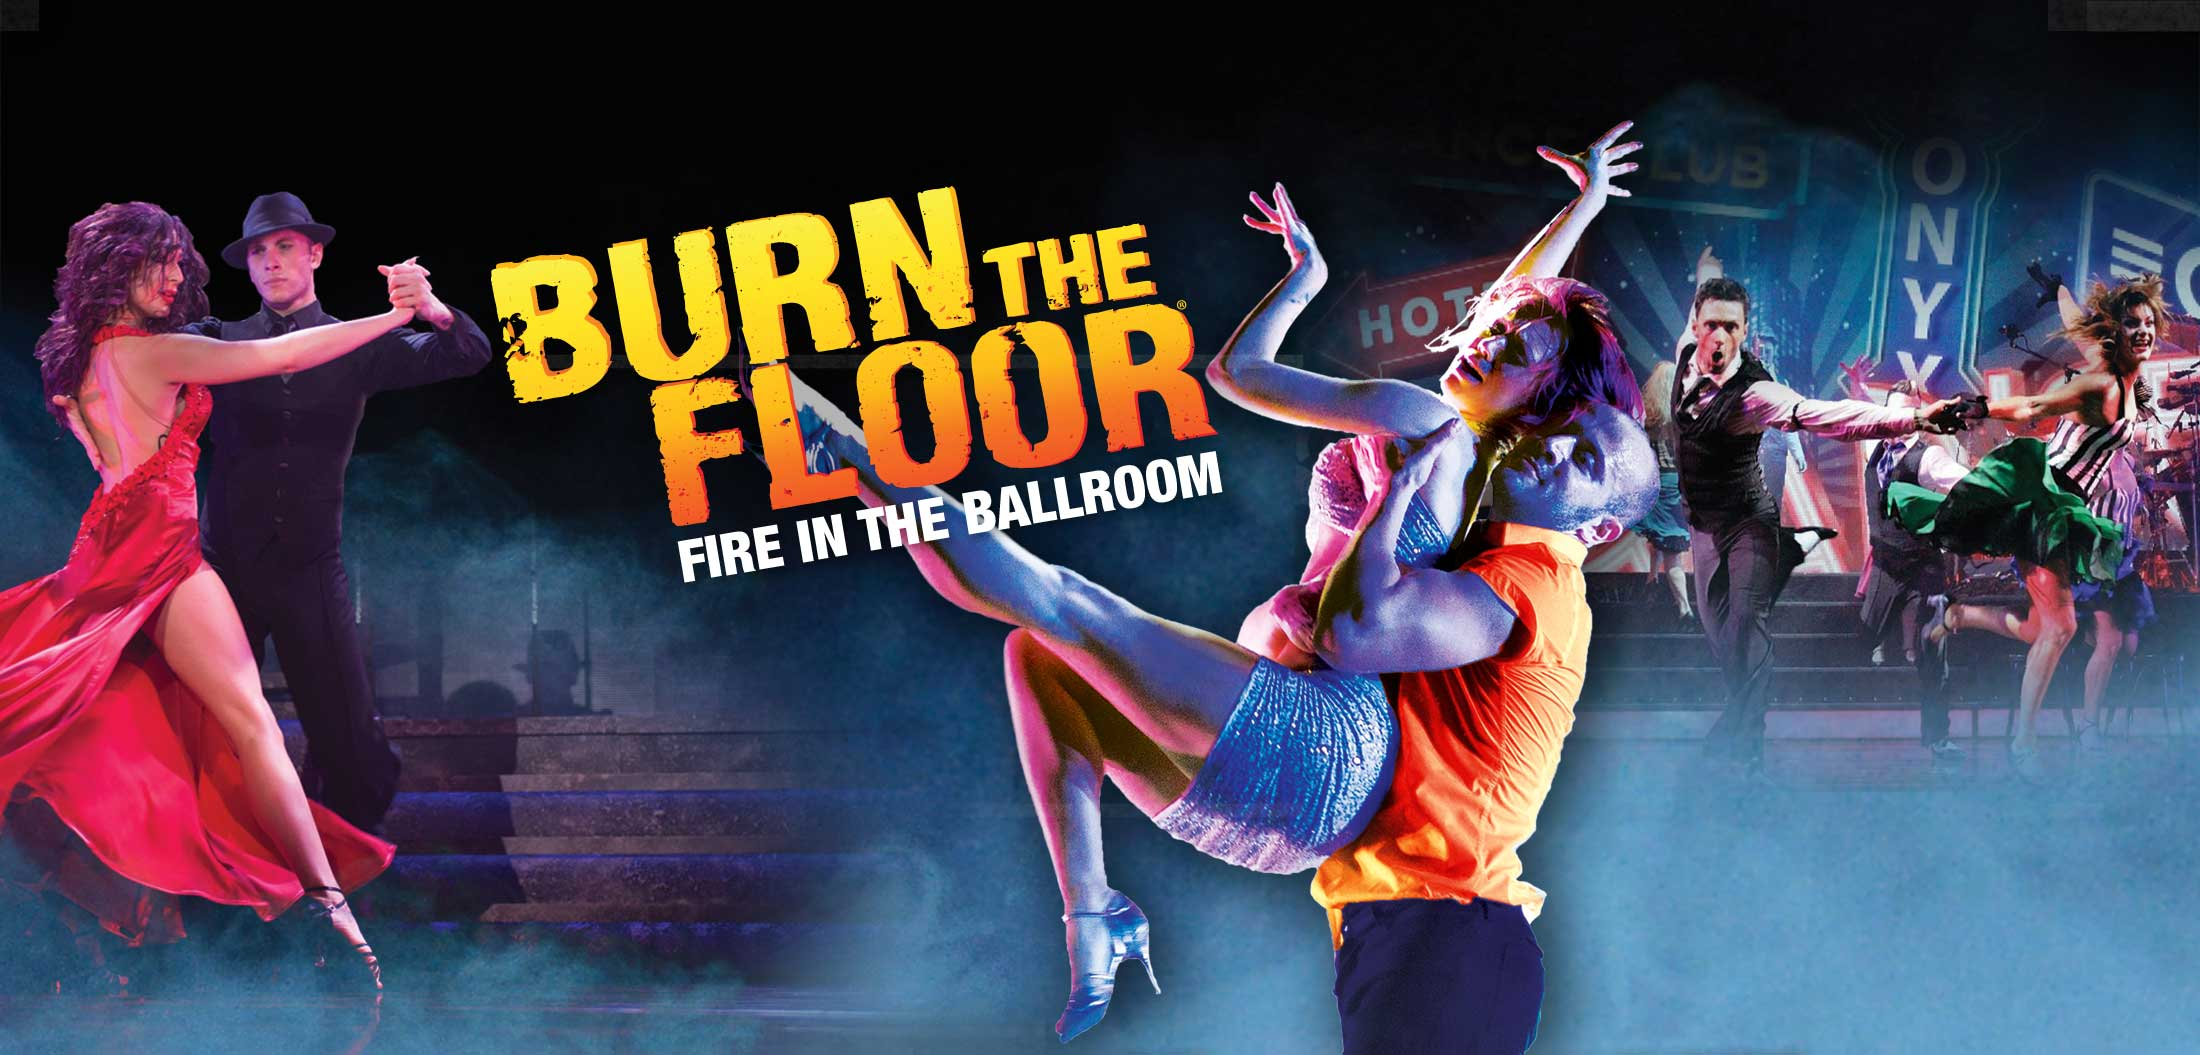 BTF_Fire_In_The_Ballroom_Slider4